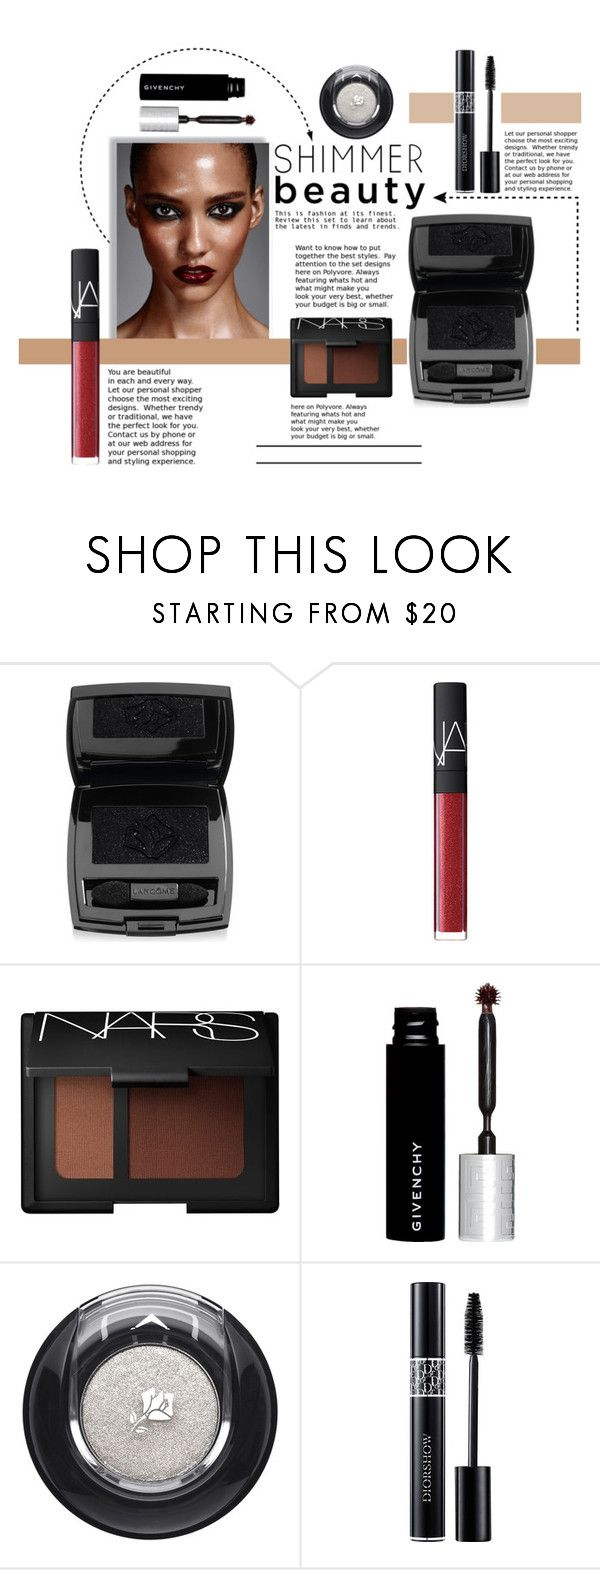 """Lady in Shimmer!"" by theodosia-kastanara ❤ liked on Polyvore featuring beauty, Lancôme, NARS Cosmetics, Givenchy and Christian Dior"